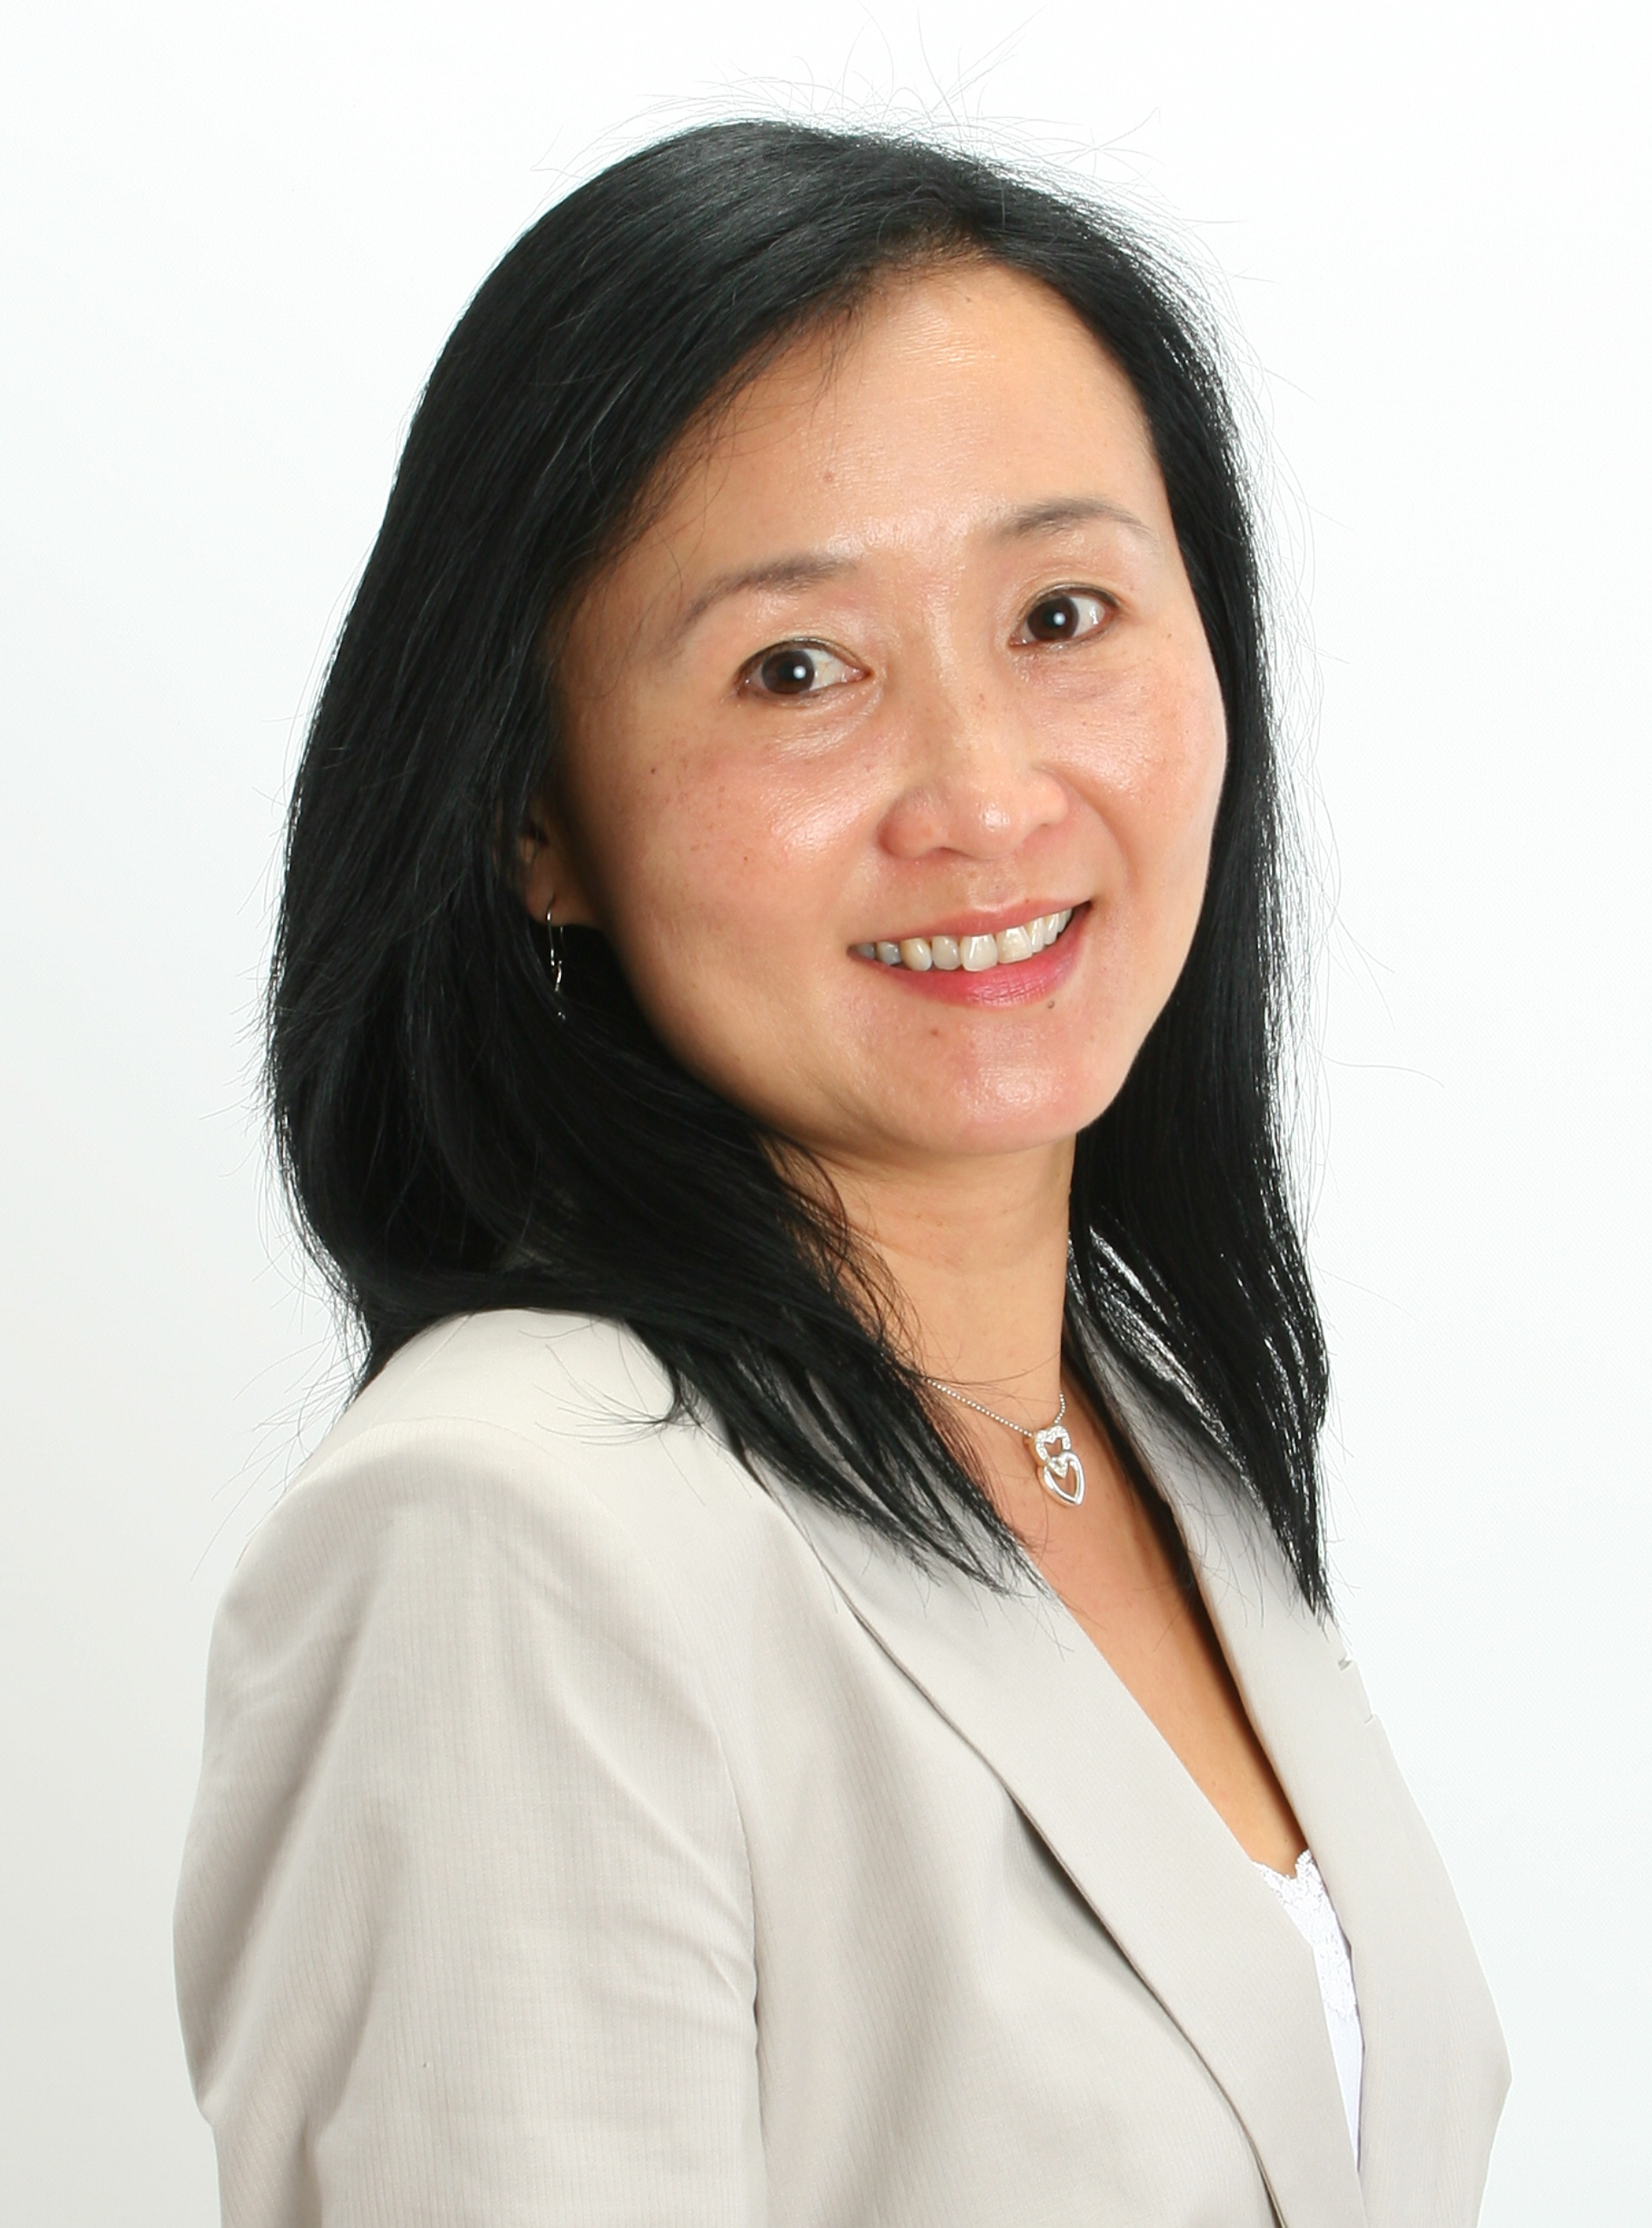 Susan Tan, research vice president at Gartner